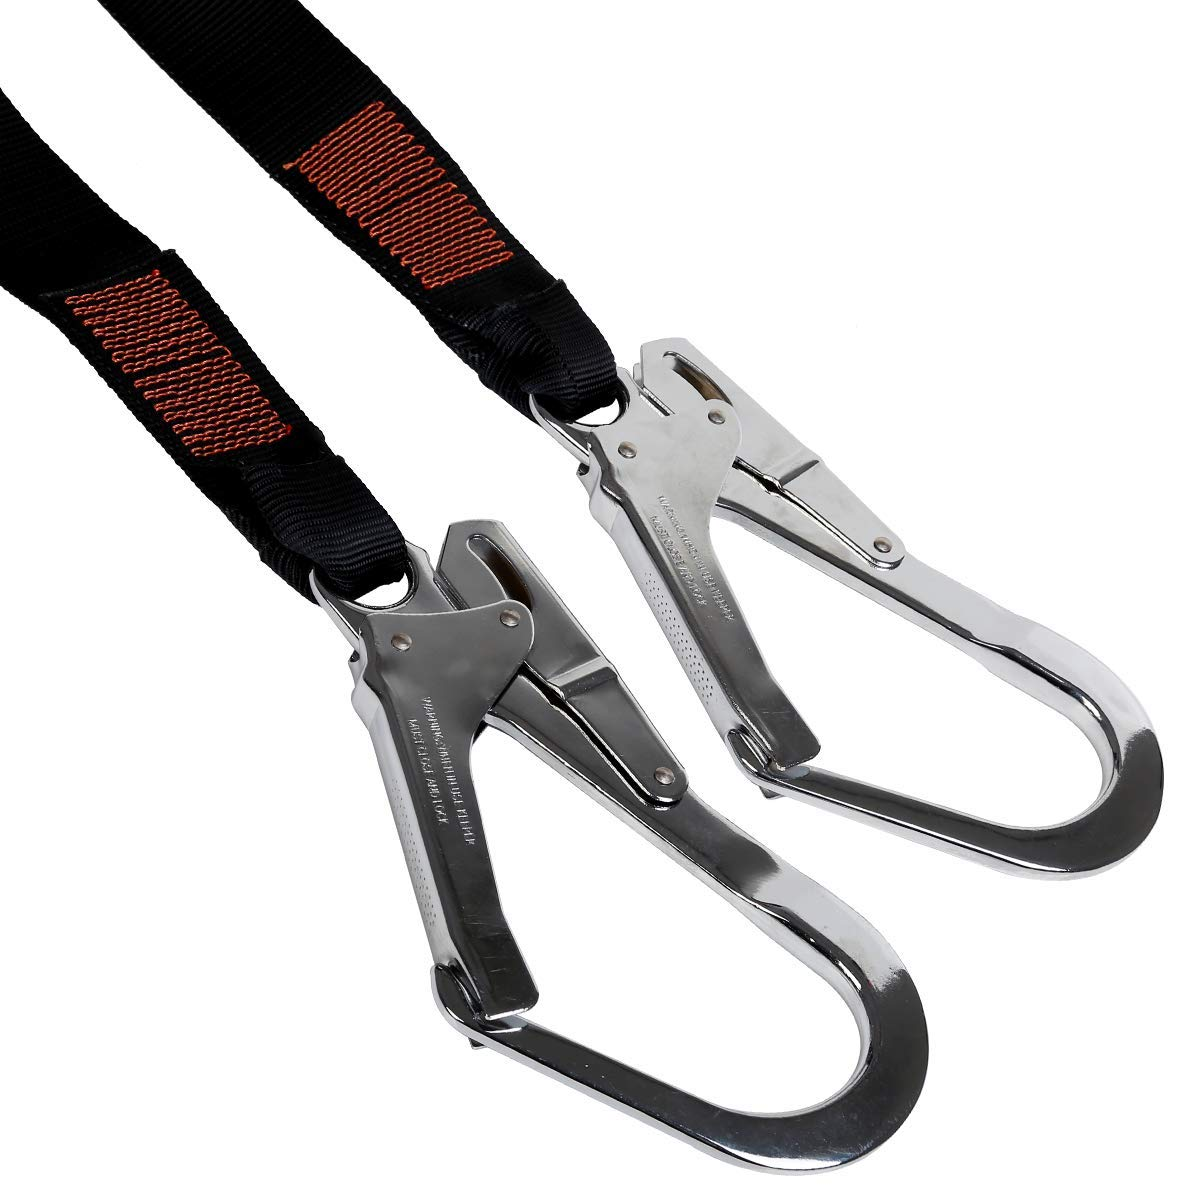 KSEIBI 422006 Single Leg Snap Hook and Two Scaffolding Hook w 6-Foot Internal Shock Lanyard Fall Protection Equipment for Safety Harness by KSEIBI (Image #3)